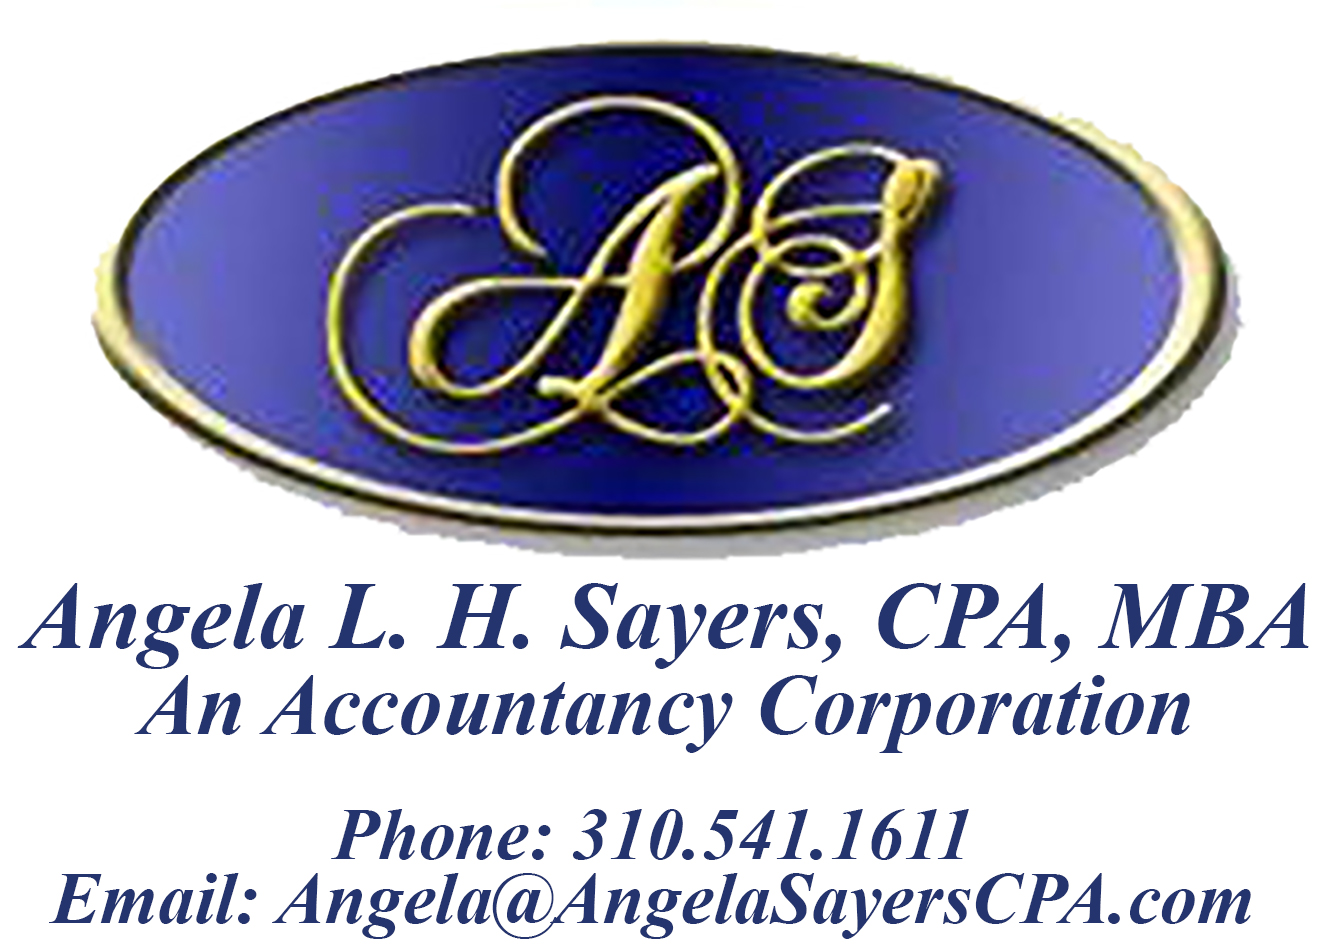 Angela Sayers logo and contact information